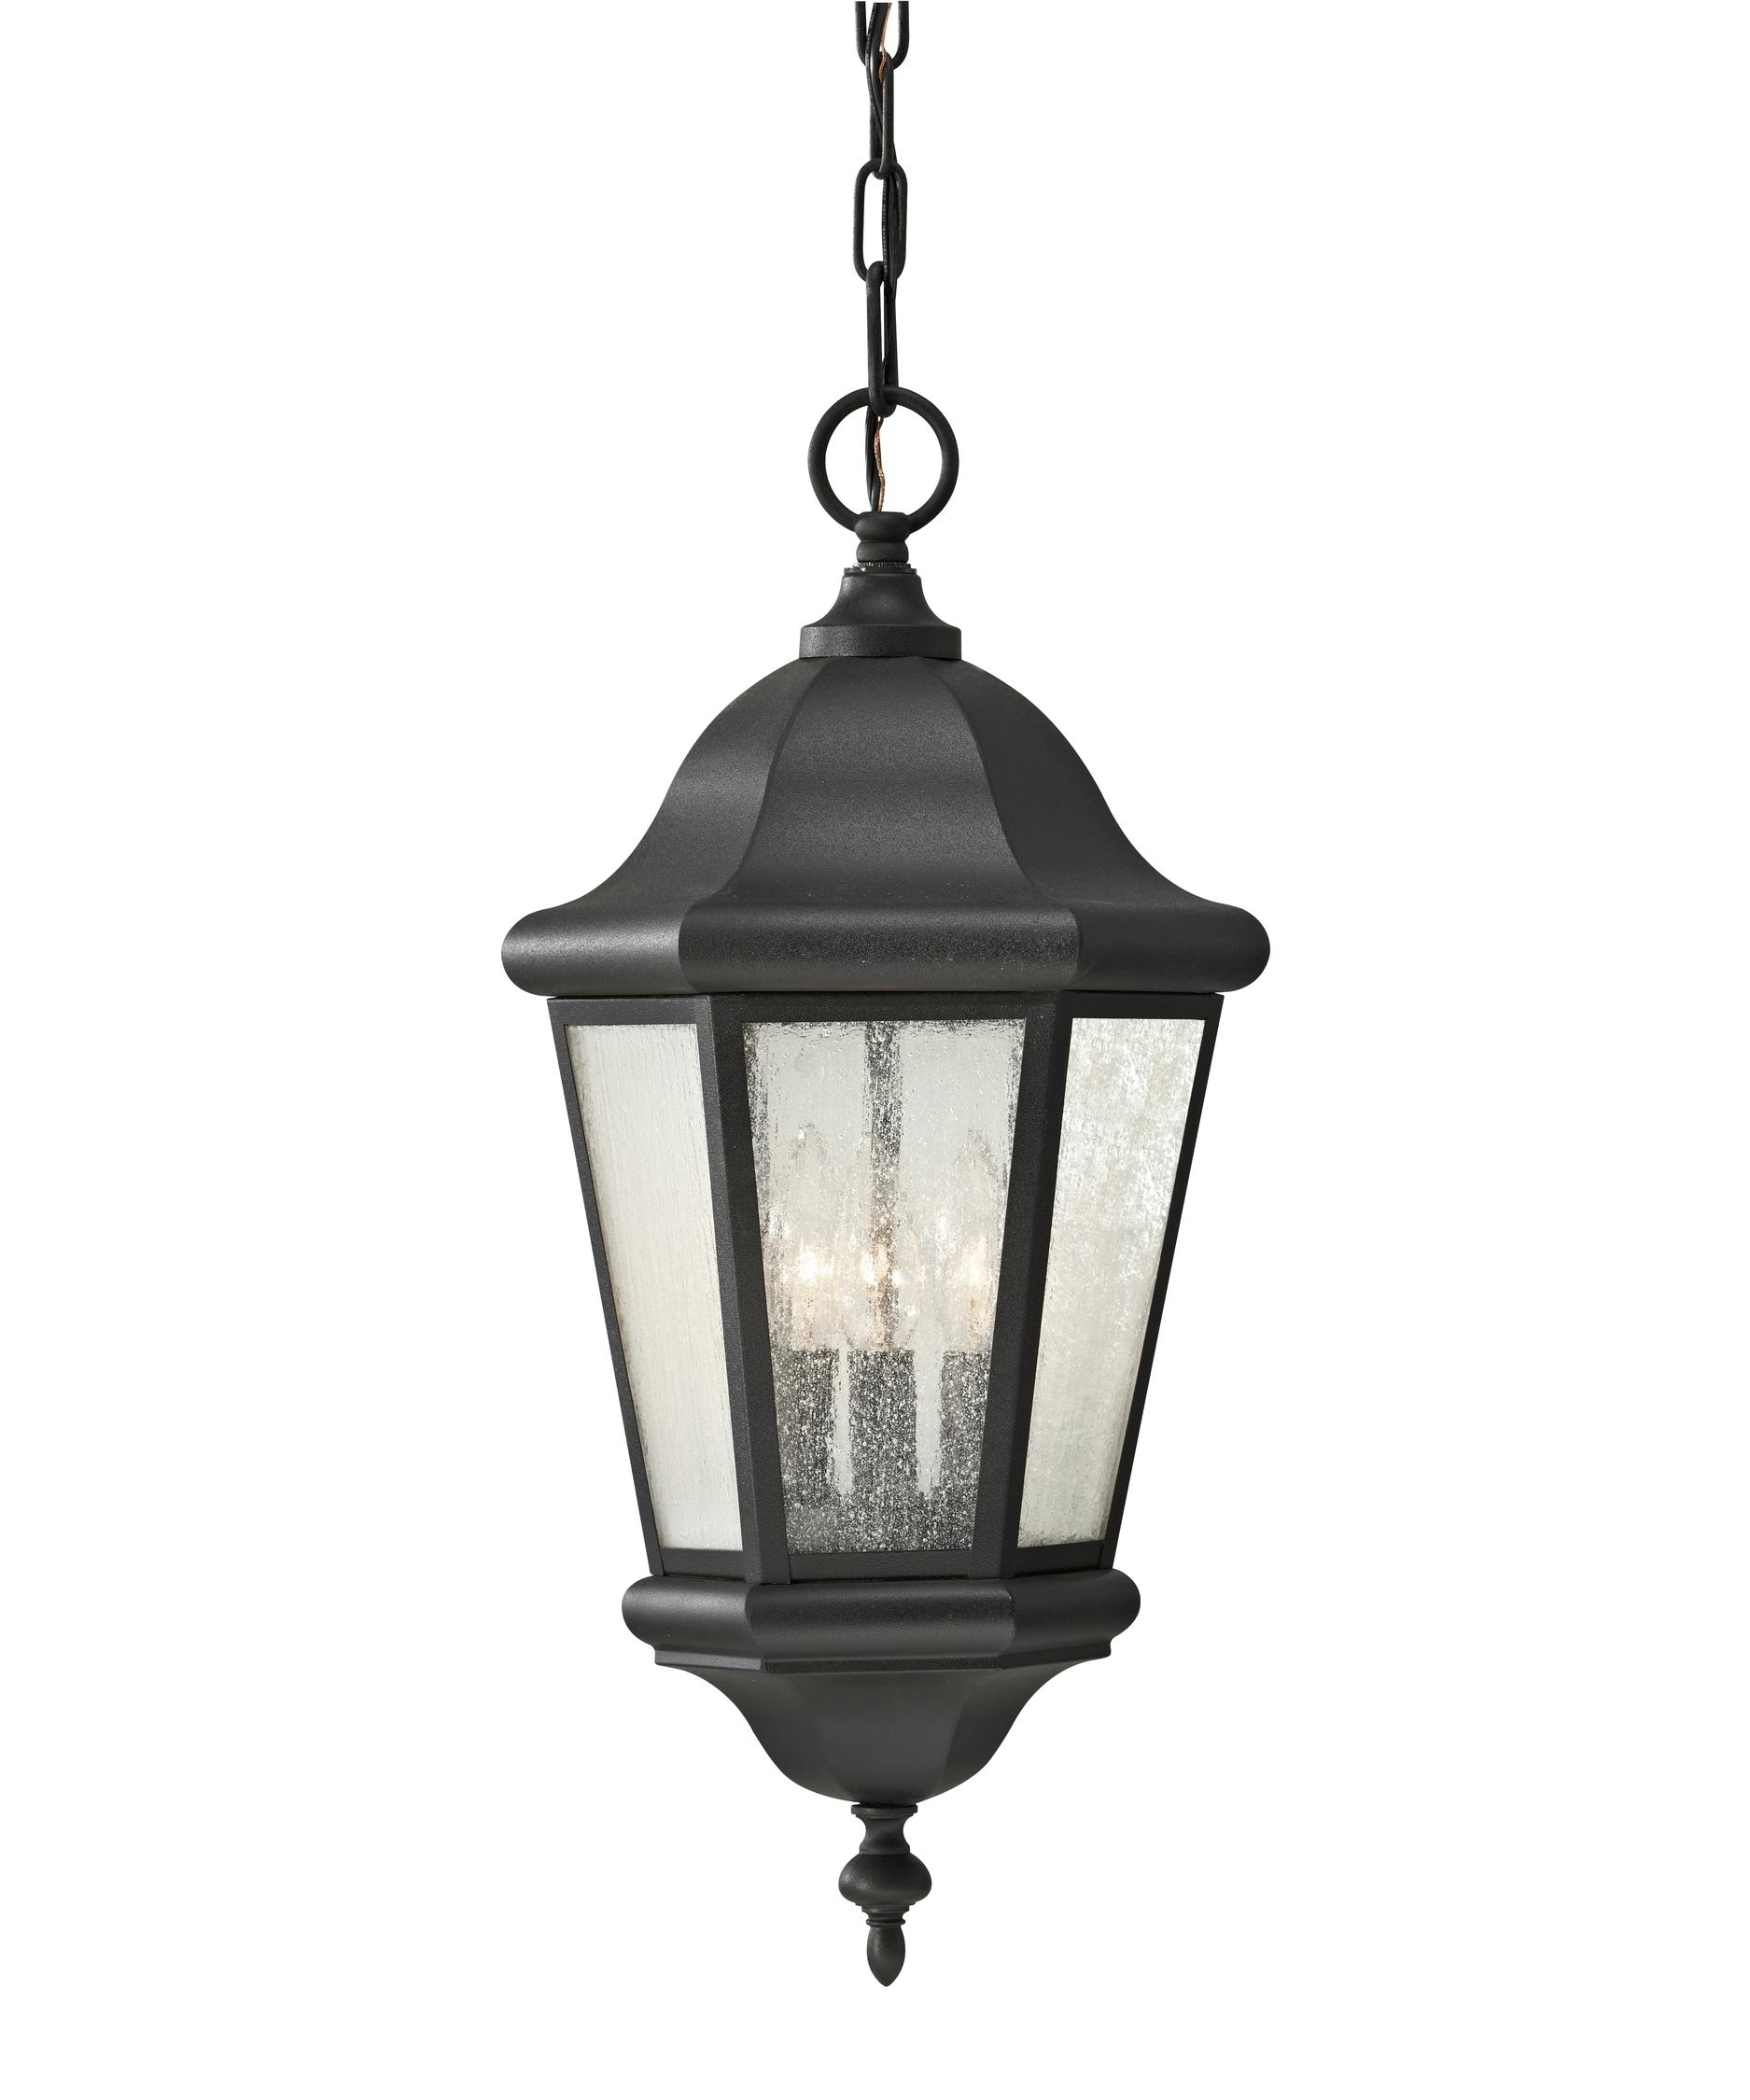 Inspiration about Murray Feiss Ol5911 Martinsville 10 Inch Wide 3 Light Outdoor In Outdoor Hanging Light In Black (#2 of 15)